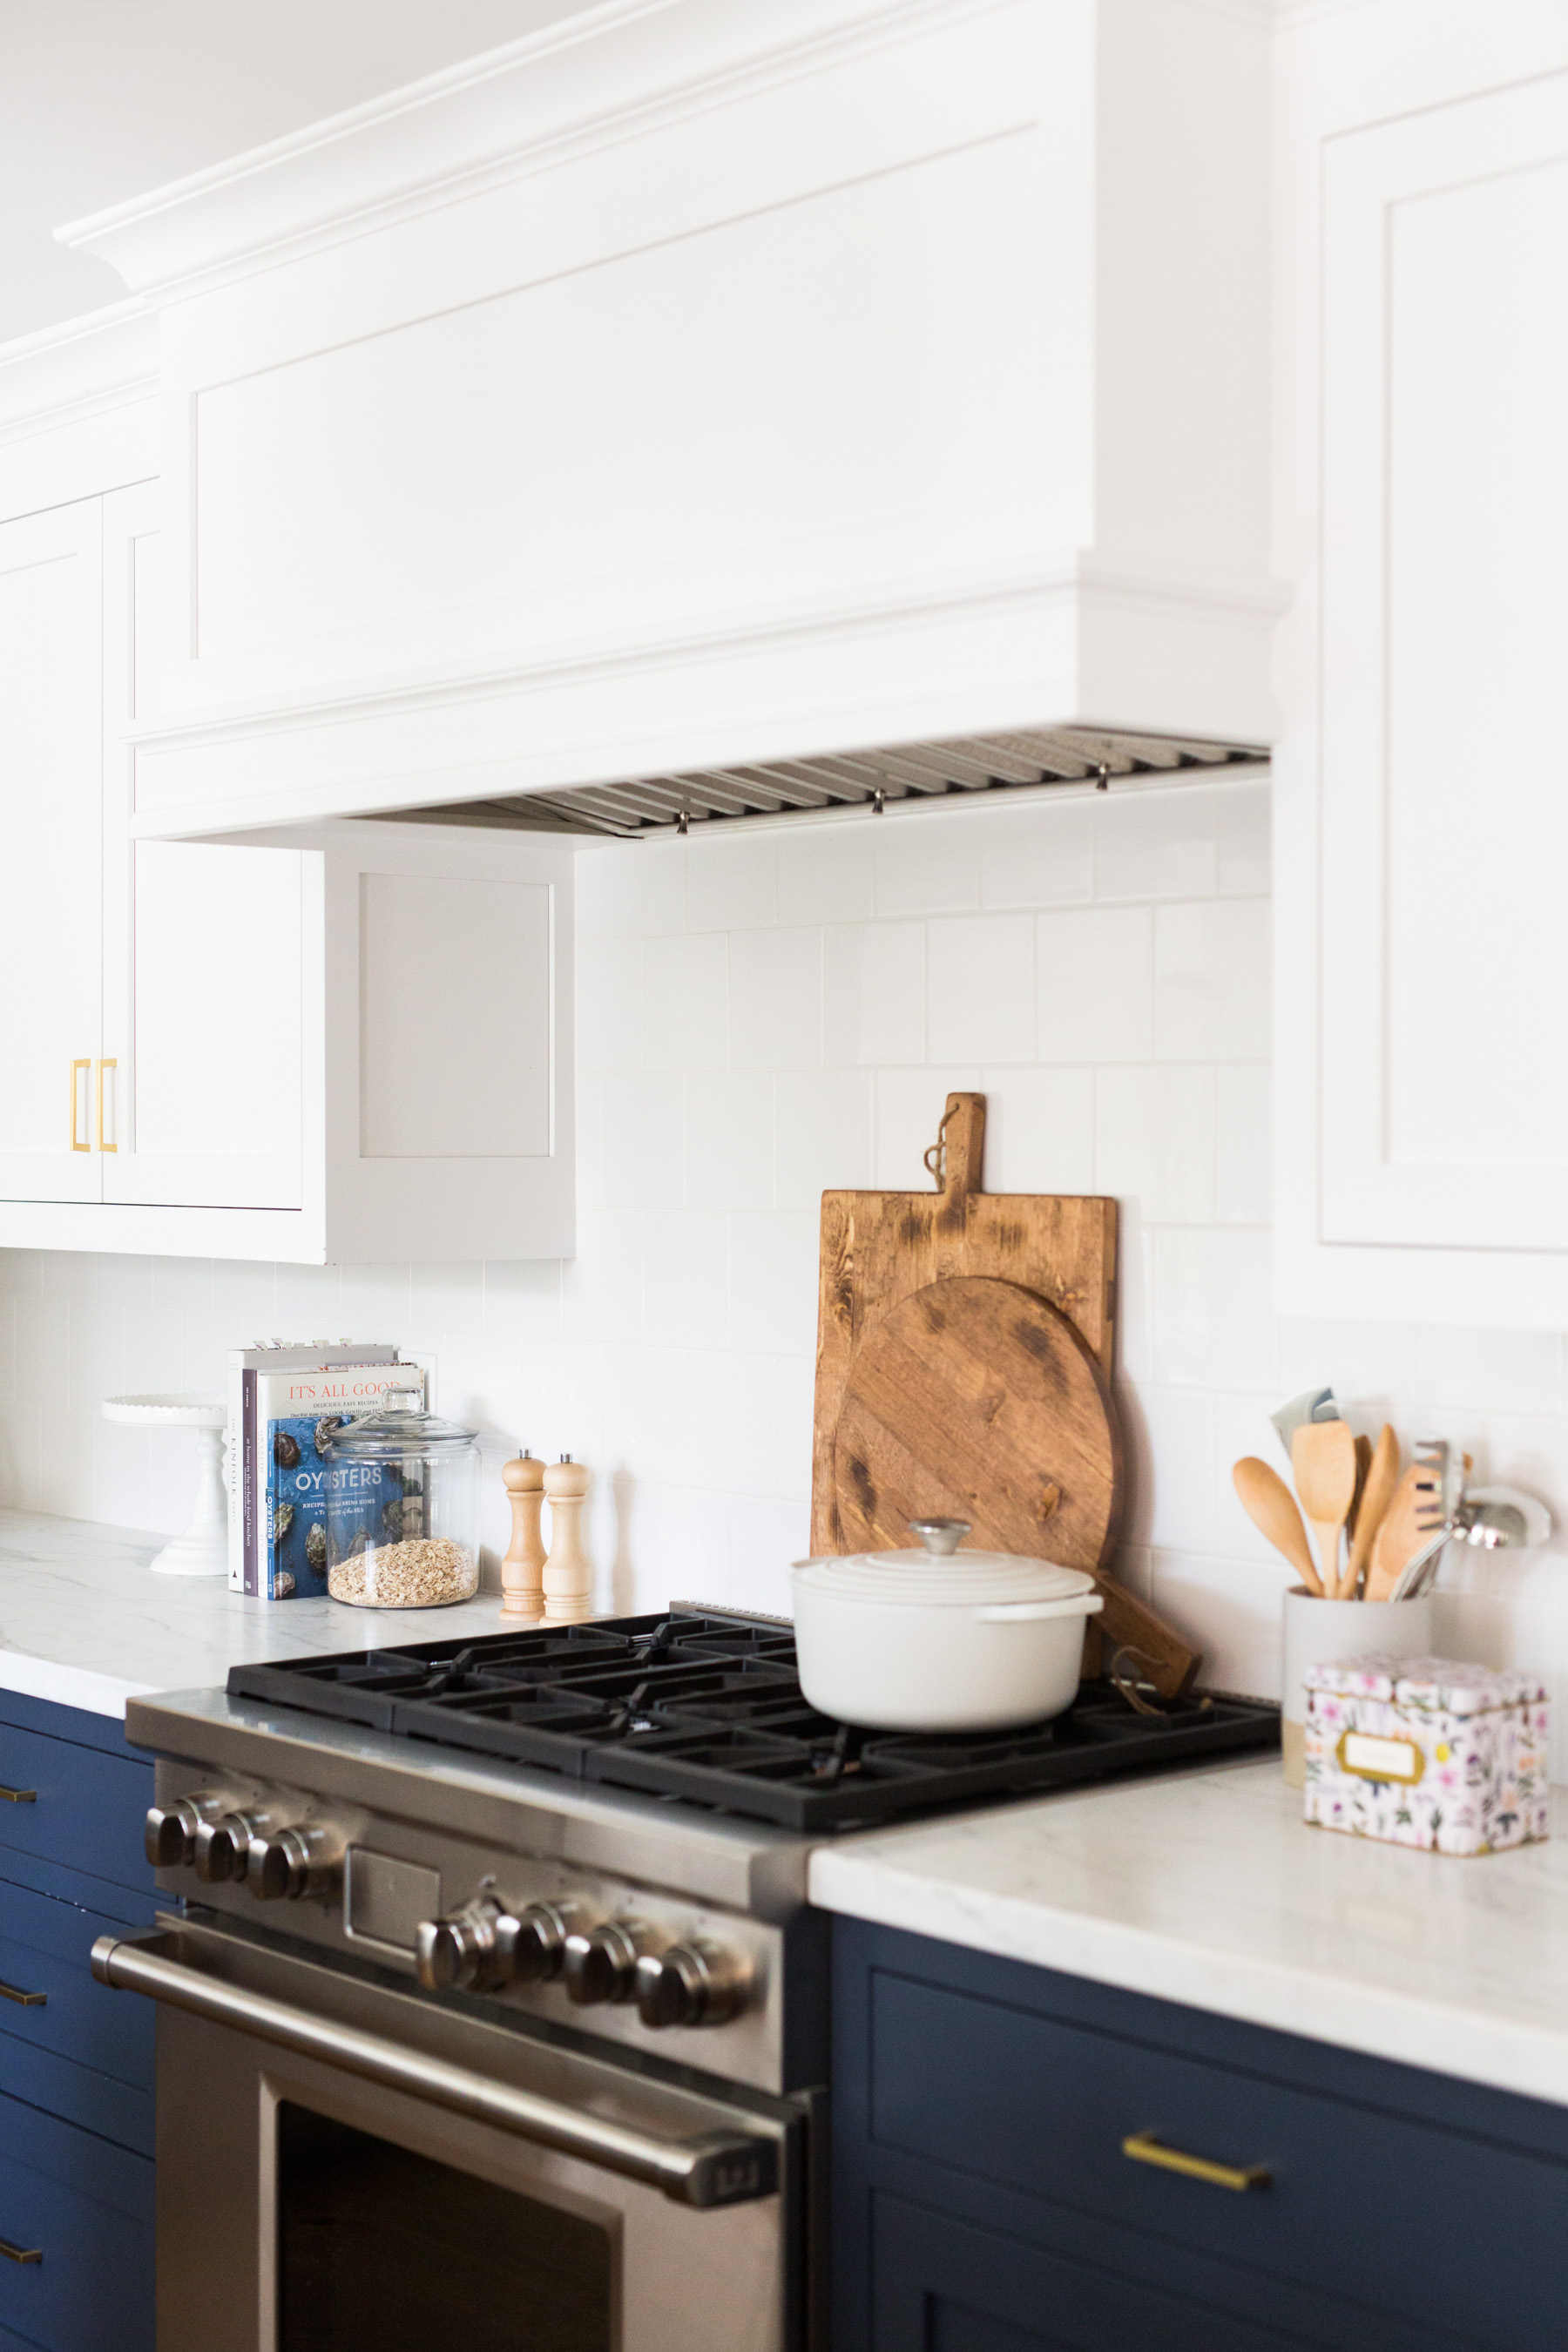 McGee & Co. Kitchen Accessories